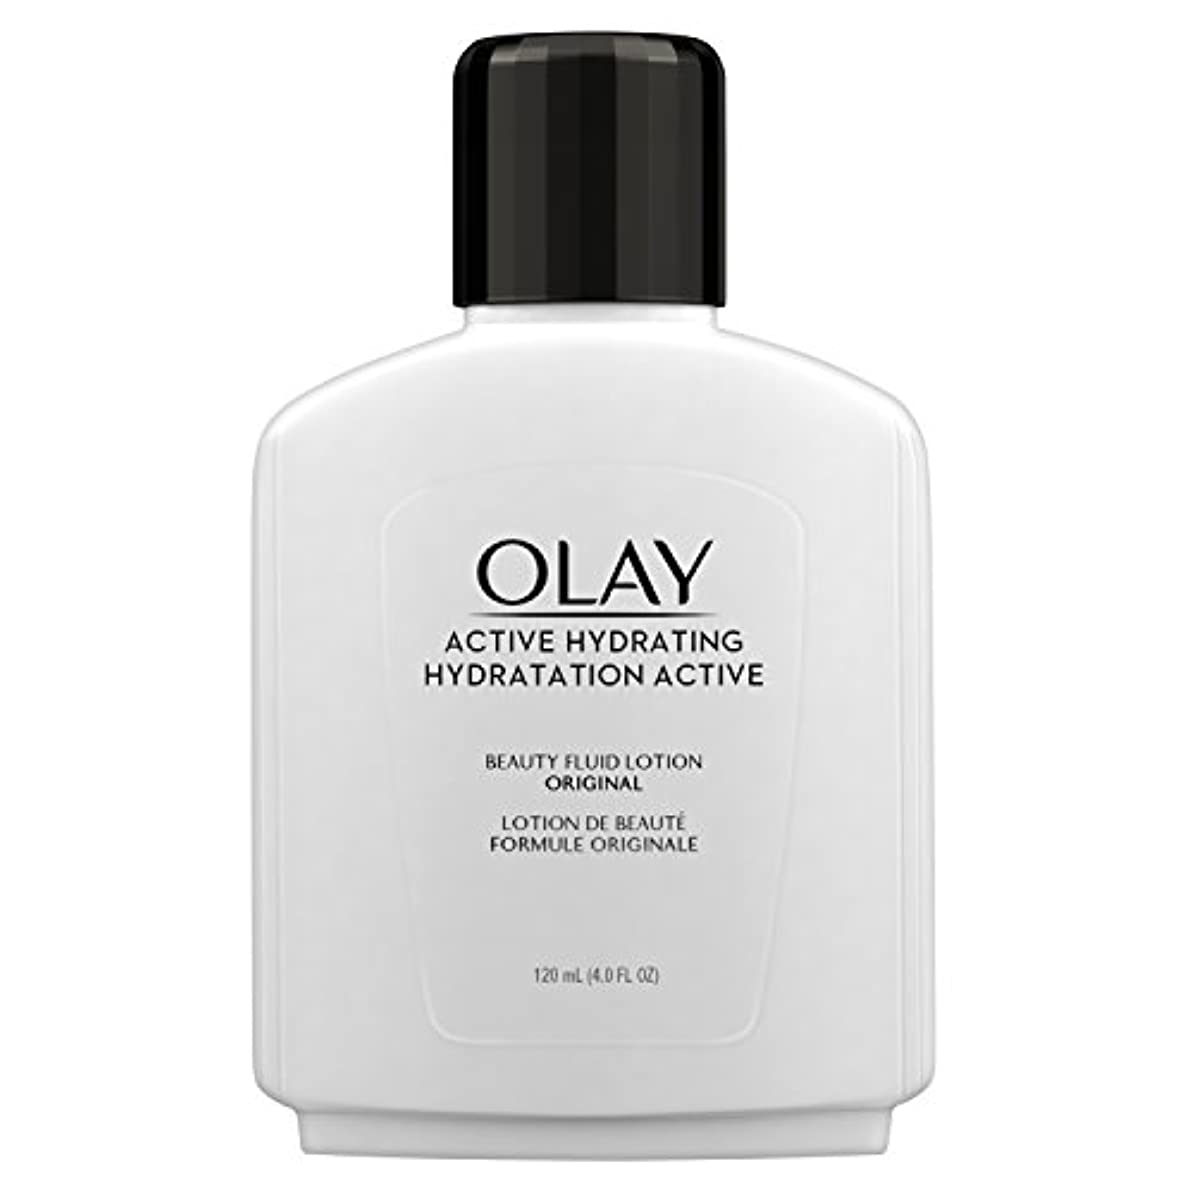 ラジエーター政府ありふれたOlay Active Hydrating Beauty Fluid Original 120 ml Moisturizer for Women by Olay